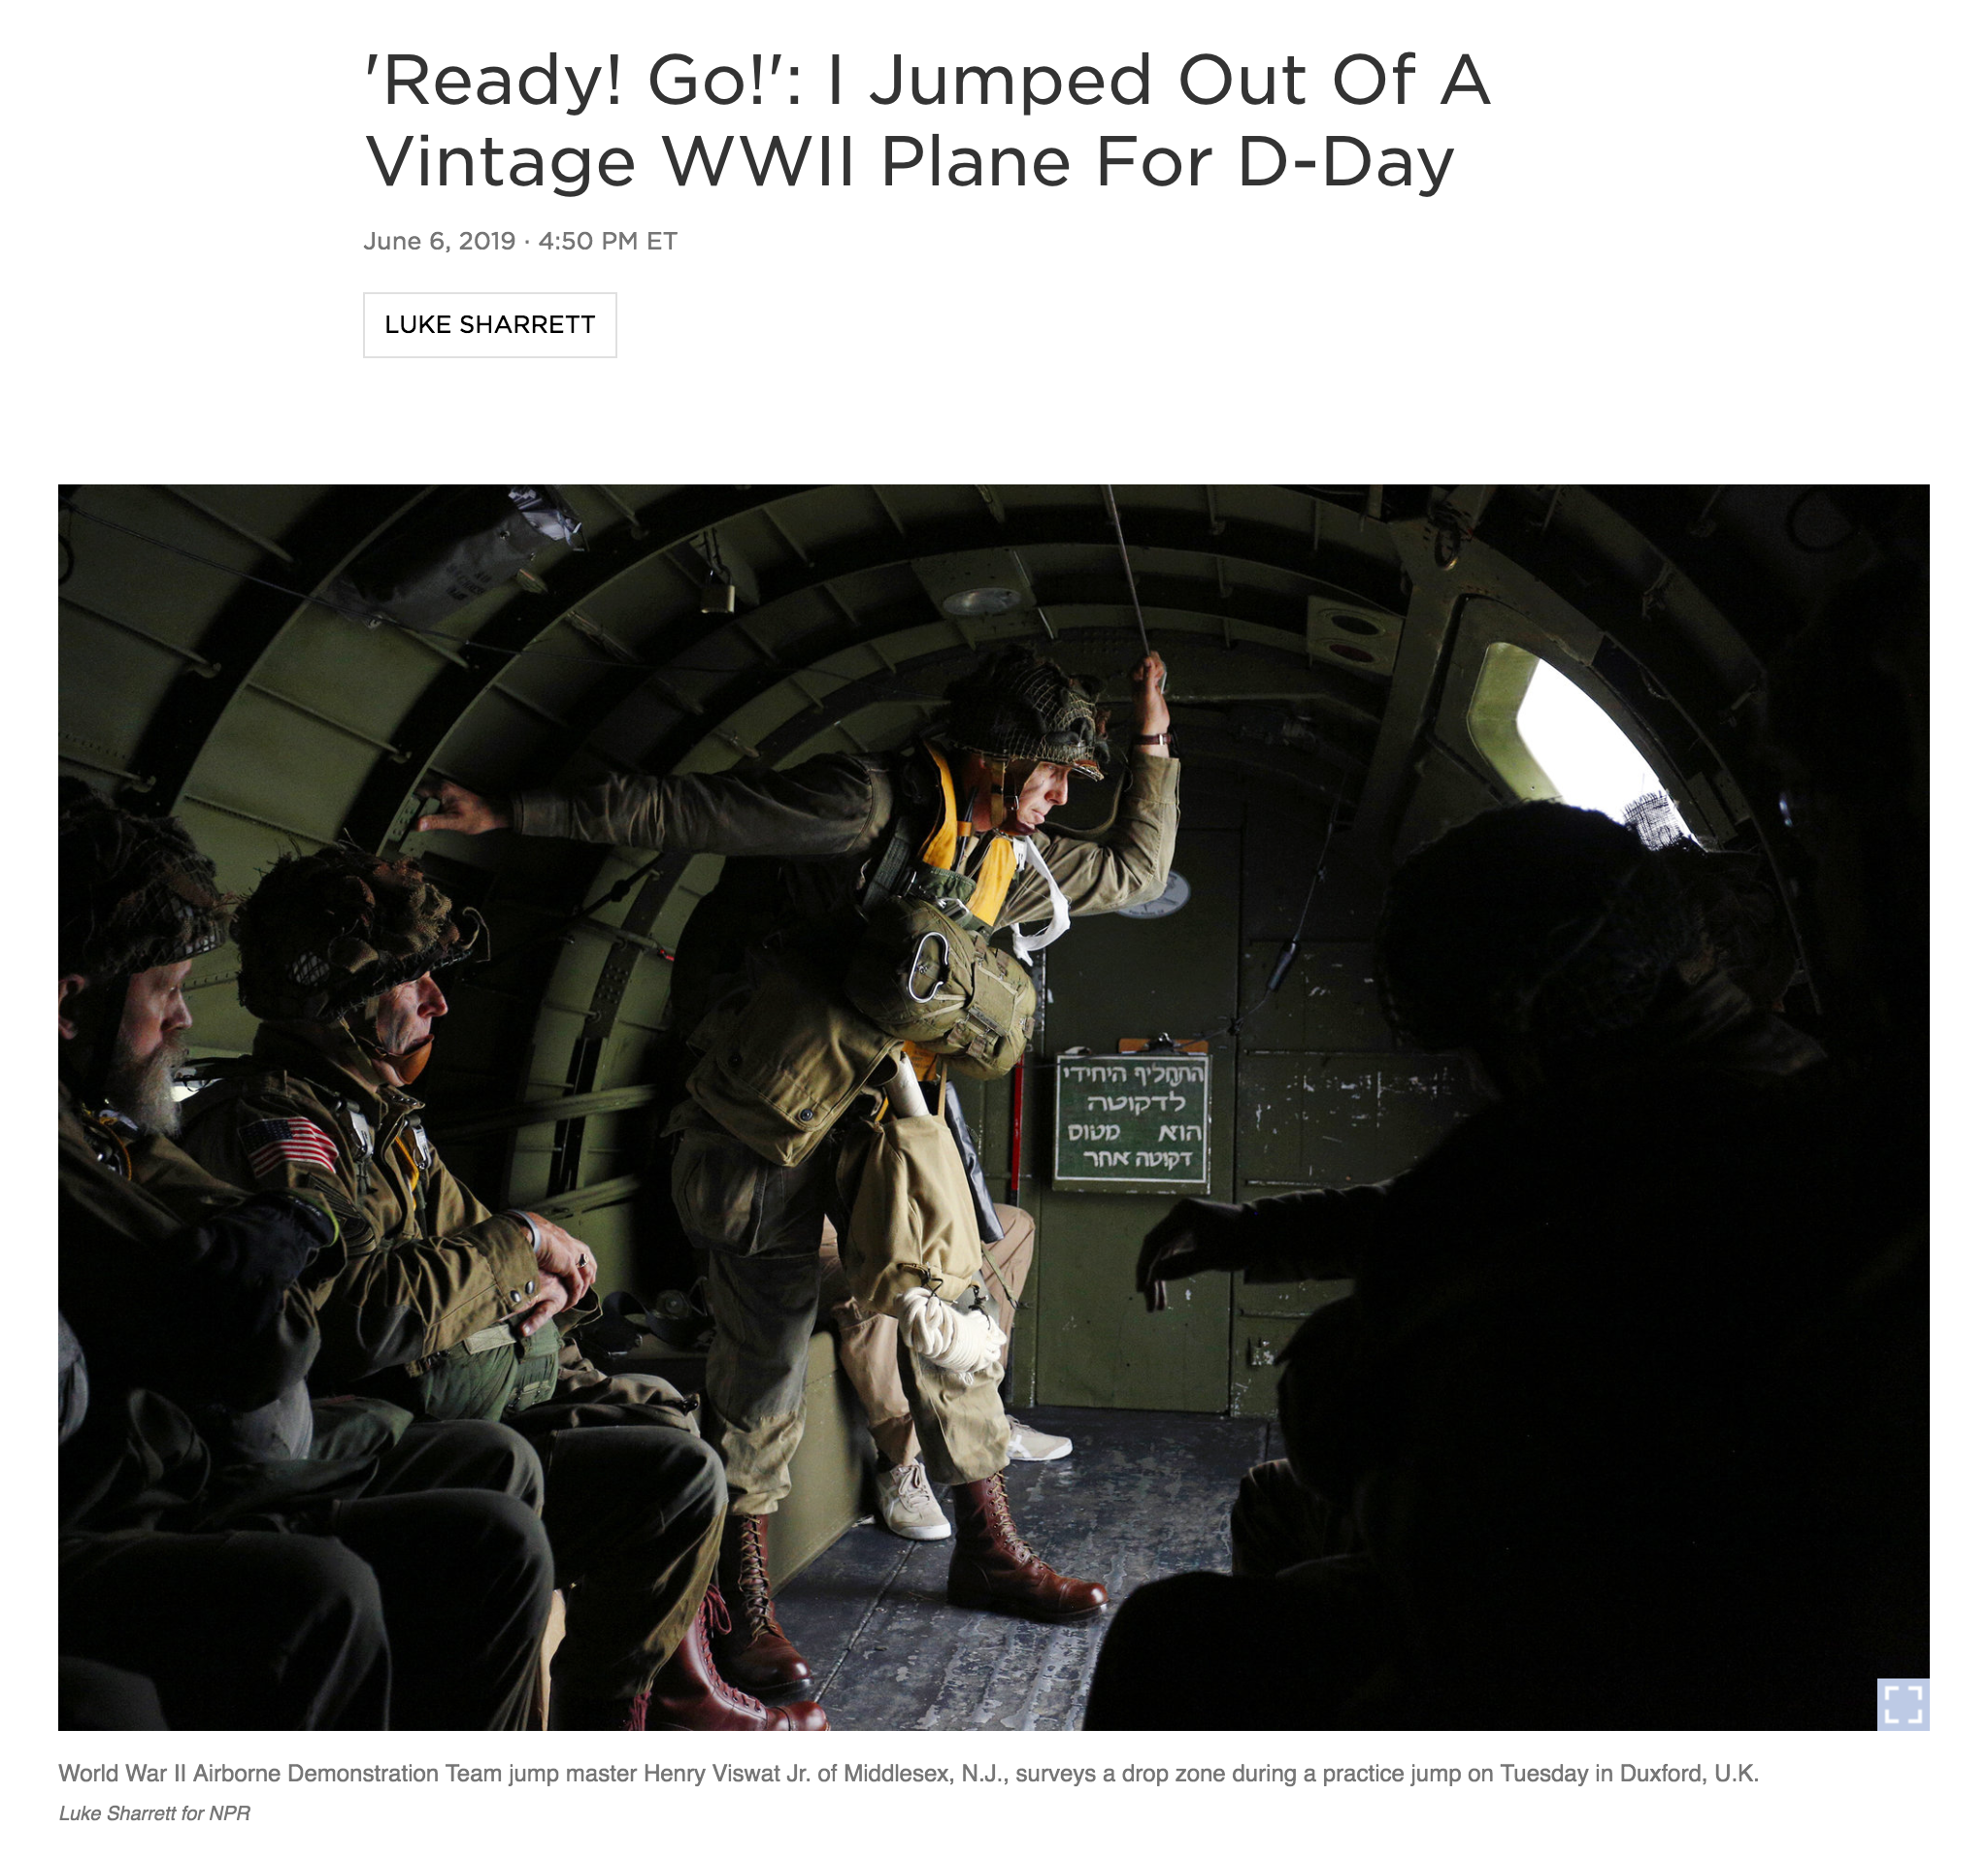 Full story    Photography and story: Luke Sharrett for NPR